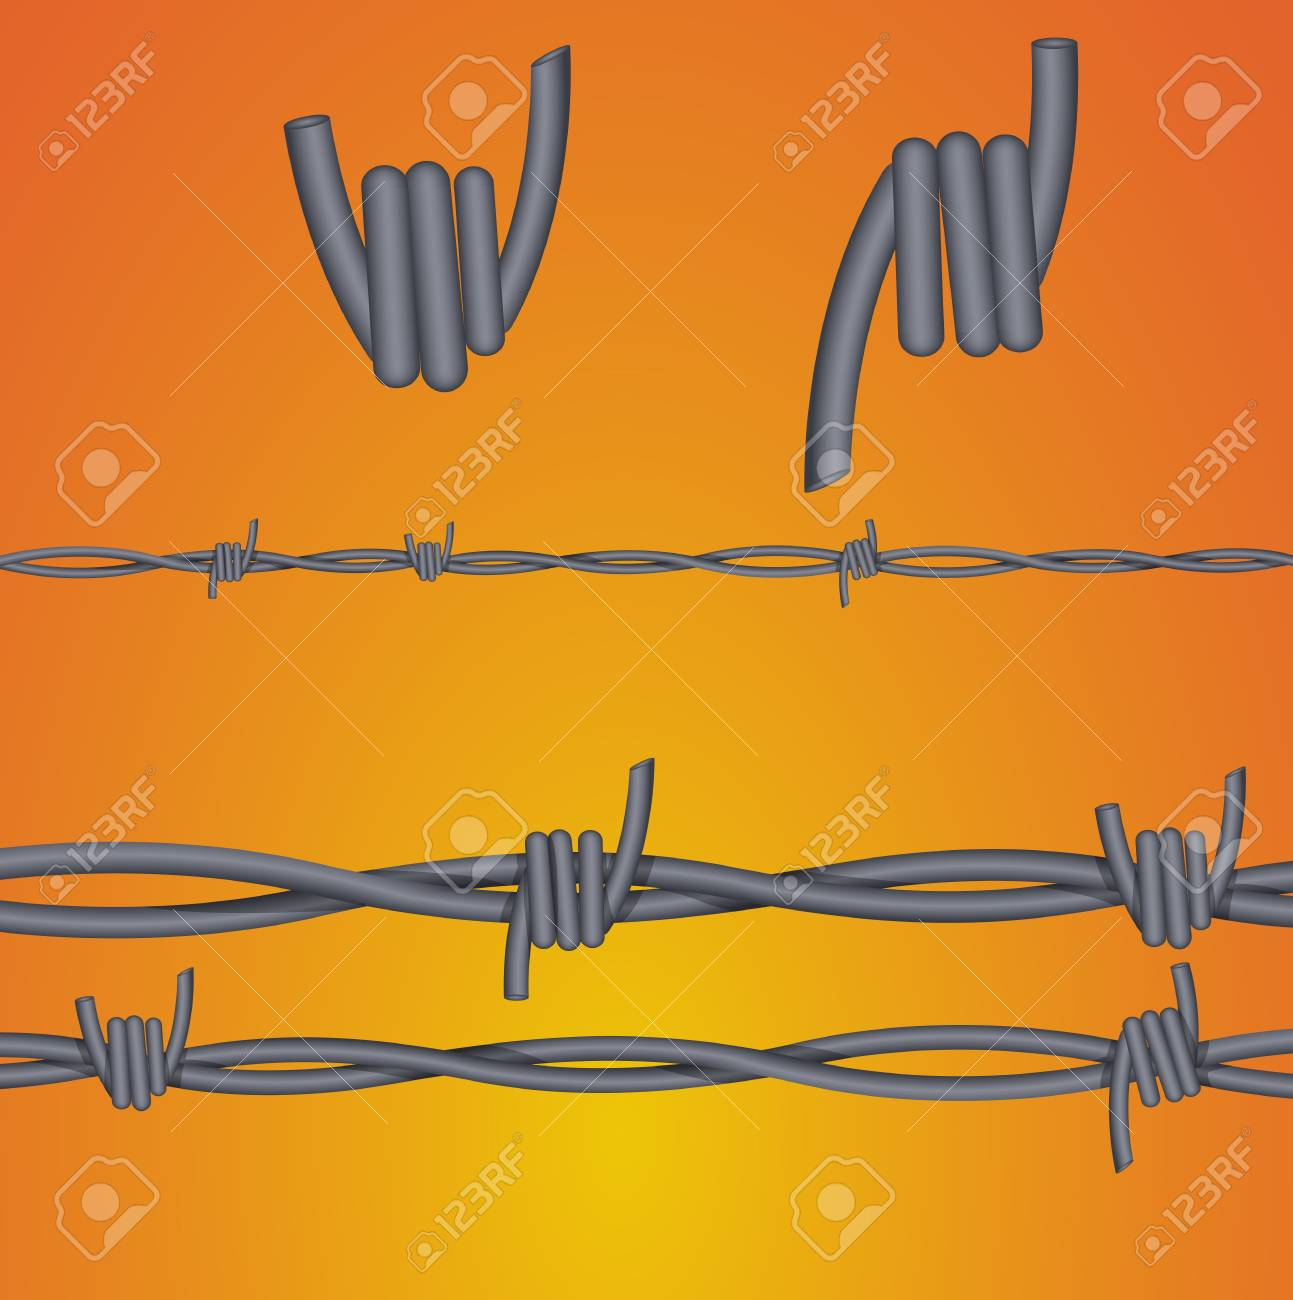 Fork Wire Vector Illustrations Stock Vector - 15245006